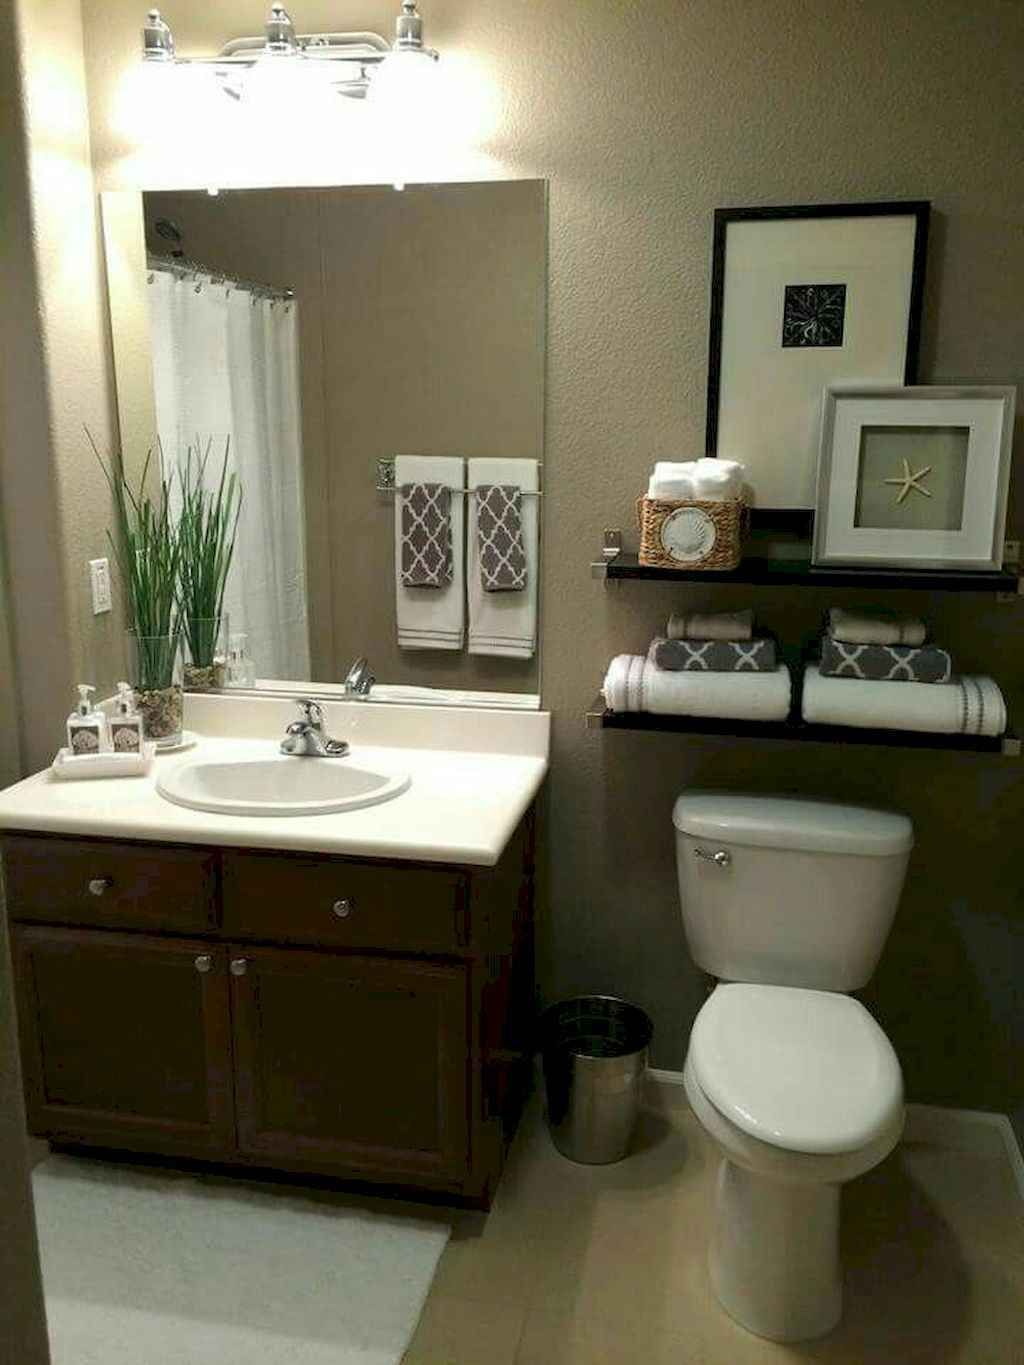 85 Stunning Small Master Bathroom Remodel Ideas In 2020 With Images